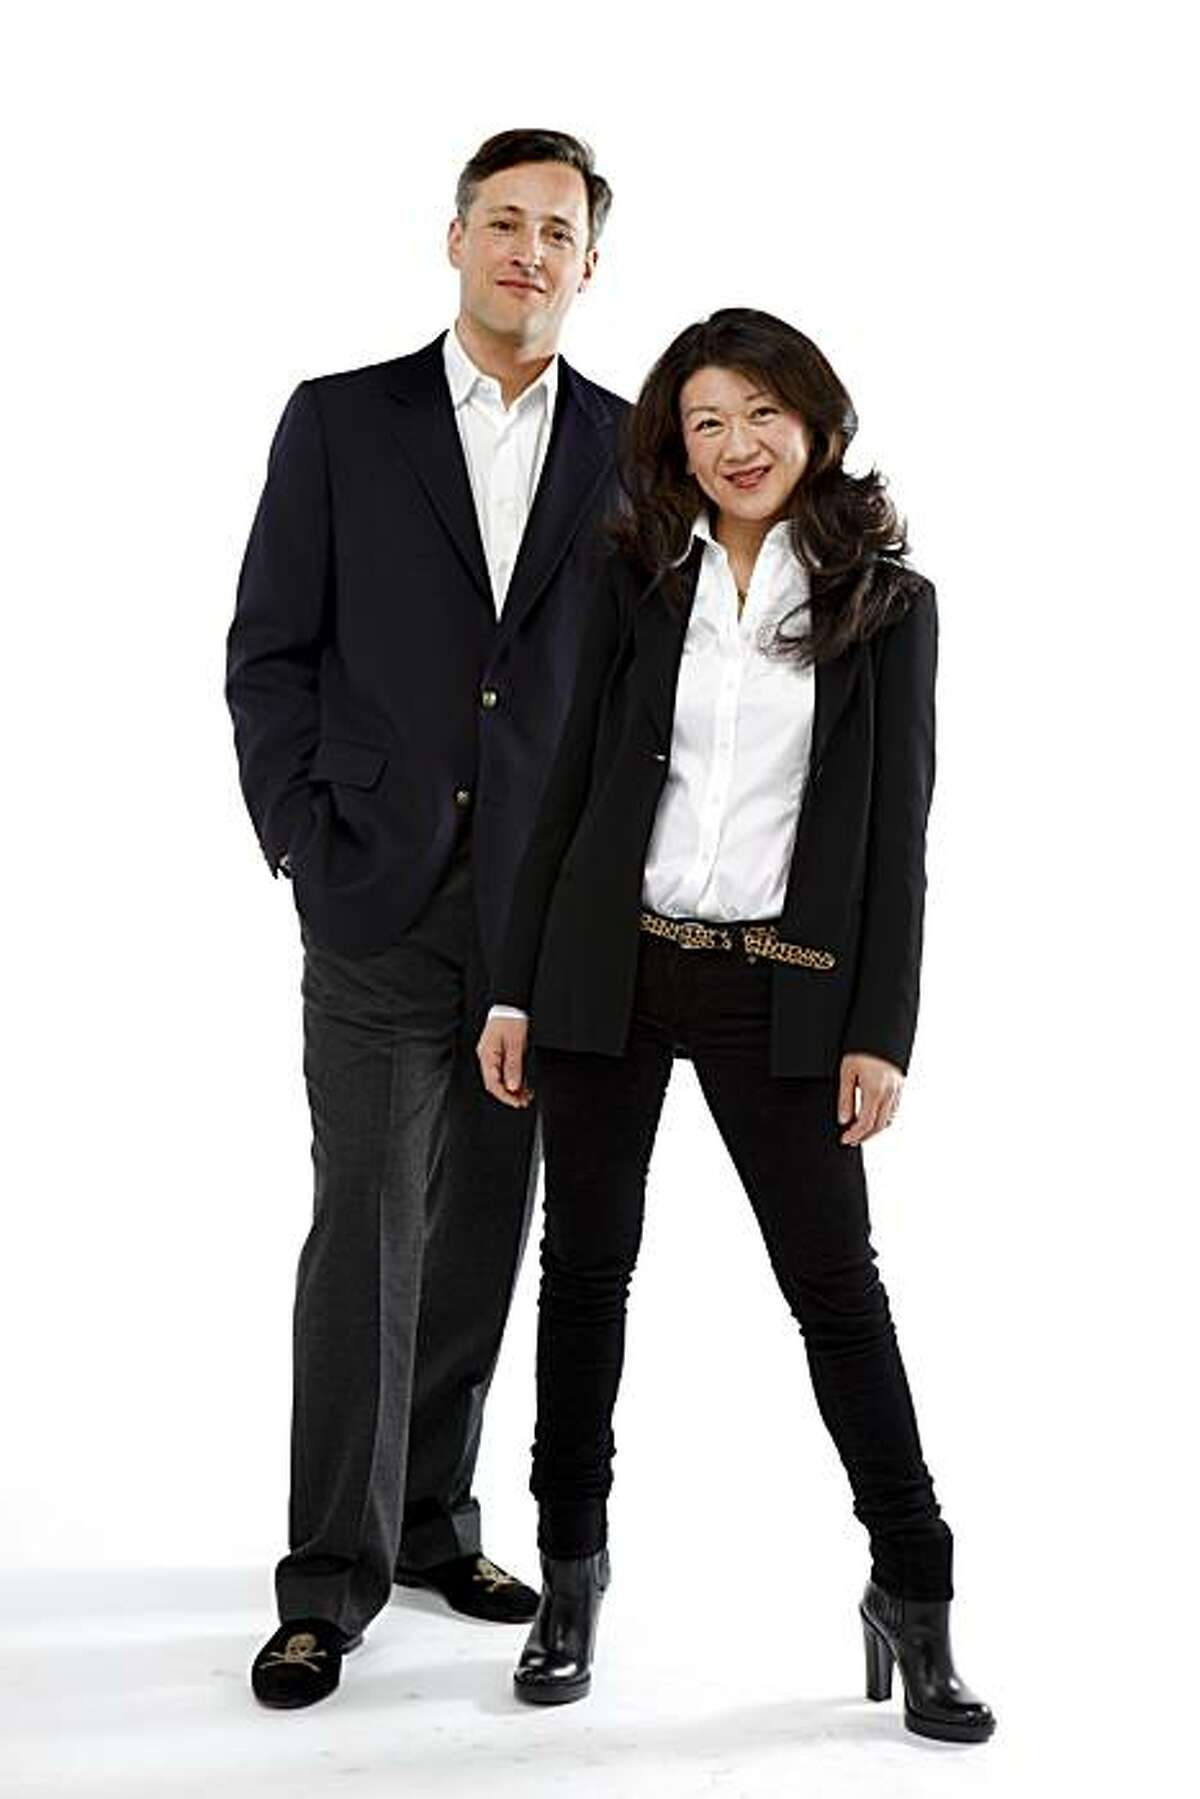 Matthew Grenby and Irene Chen of Lomoi, seen on Thursday, Jan. 6, 2011 in San Francsico, Calif., are in this week's Stylemaker Spotlight.